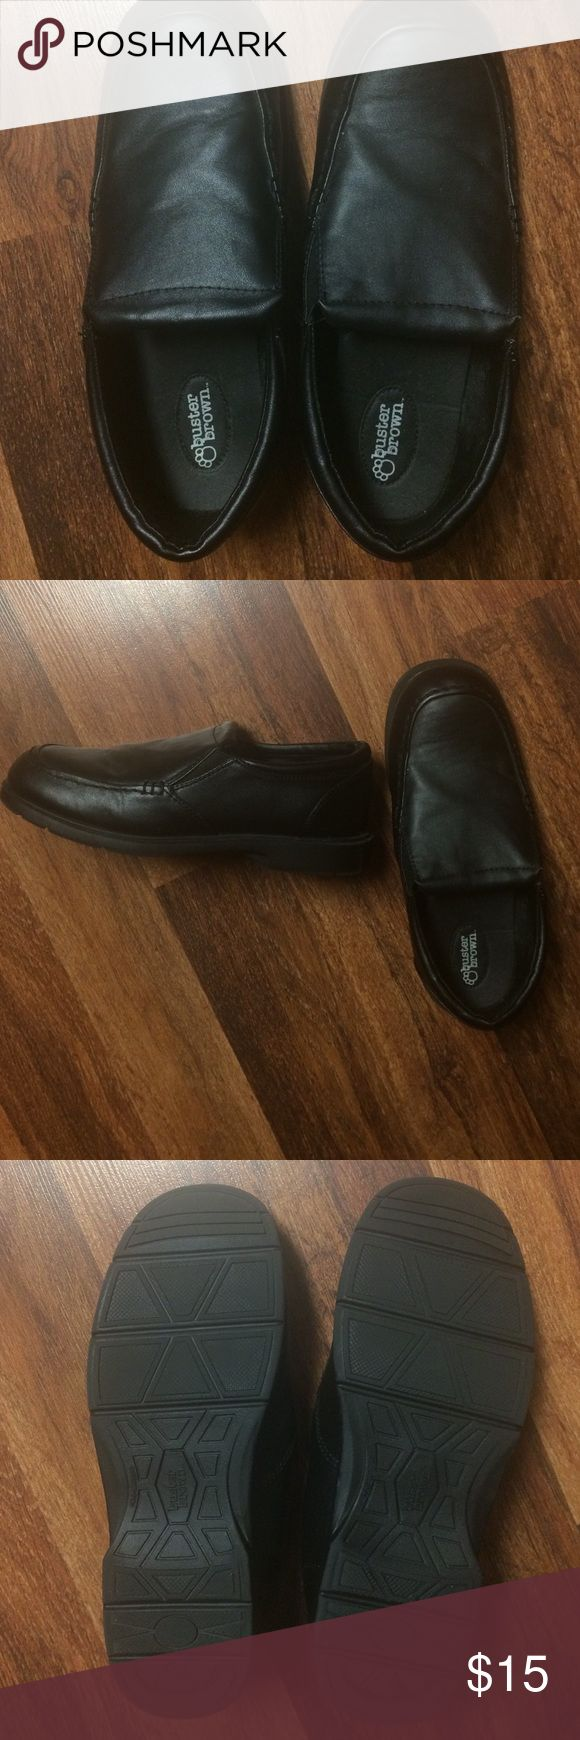 Boys dress shoes Black dress shoes. Worn once to church. buster brown Shoes Dress Shoes